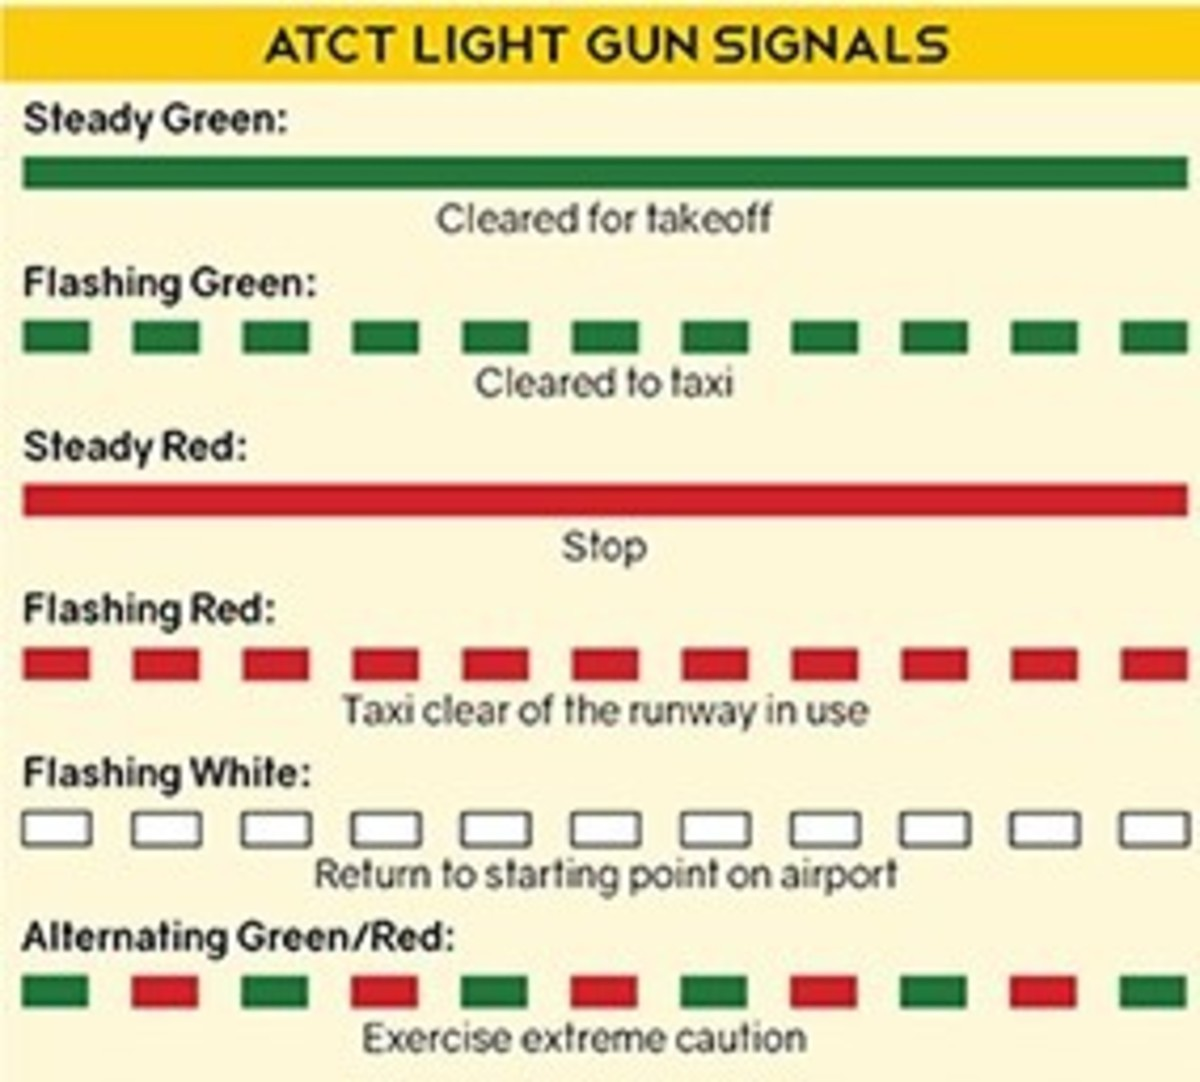 If you lose two radio communication with the tower; turn your vehicle to face the tower flash your headlights and wait for light gun signals. If you have a mobile phone call airport operations or ATCT